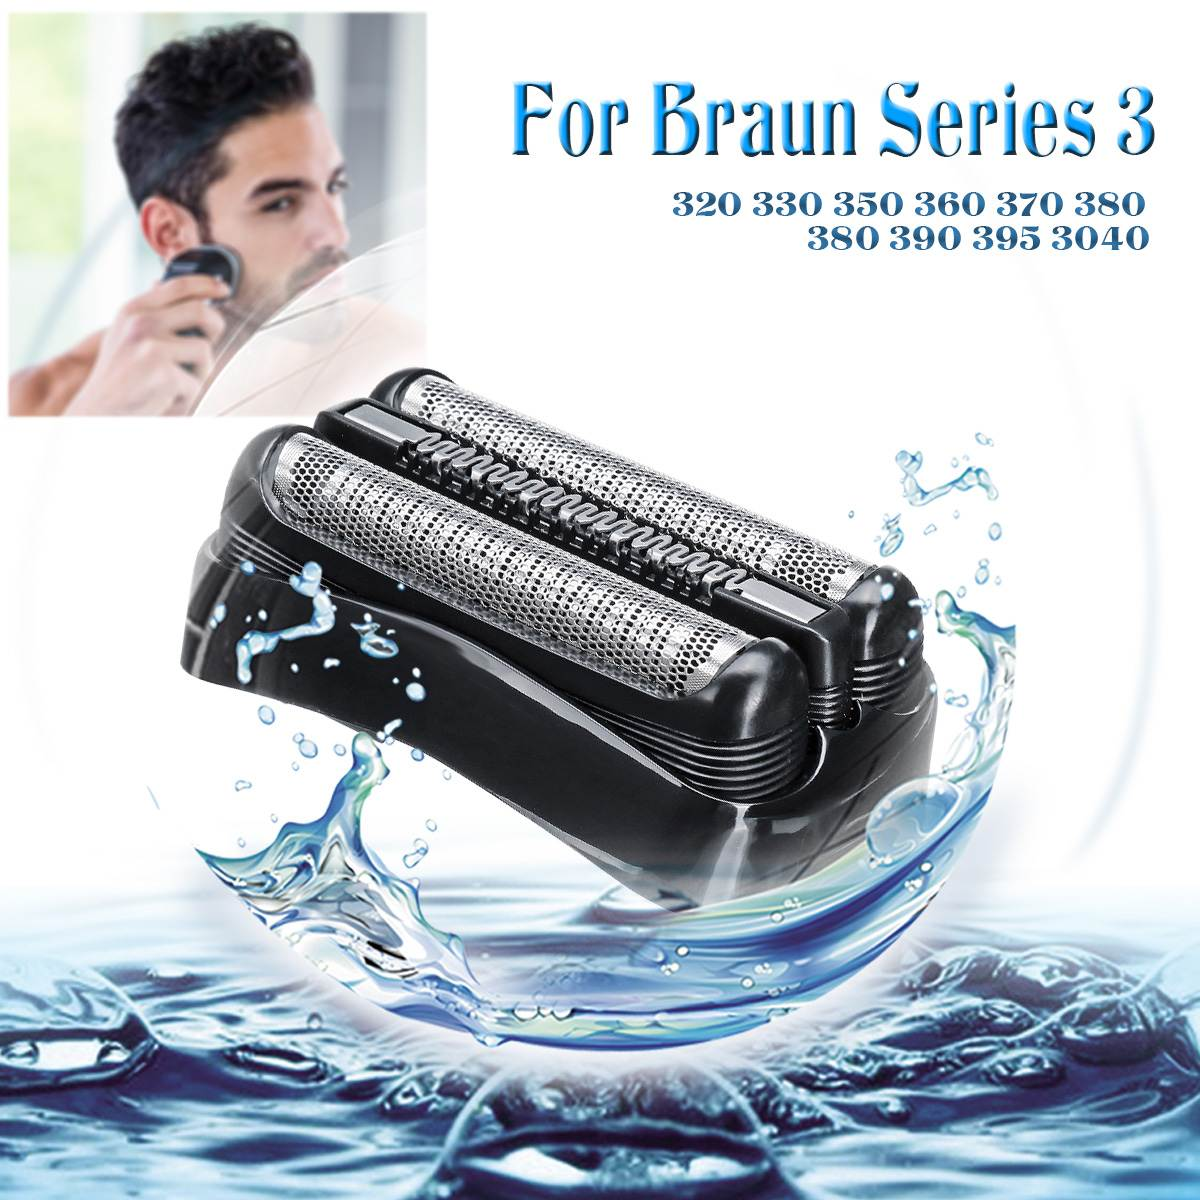 Shaver Blade Foil Head Replacement For Braun Series 3 21B 320 330 350 360 370 380 380 390 Stainless Steel Razor Cutter Head Foil